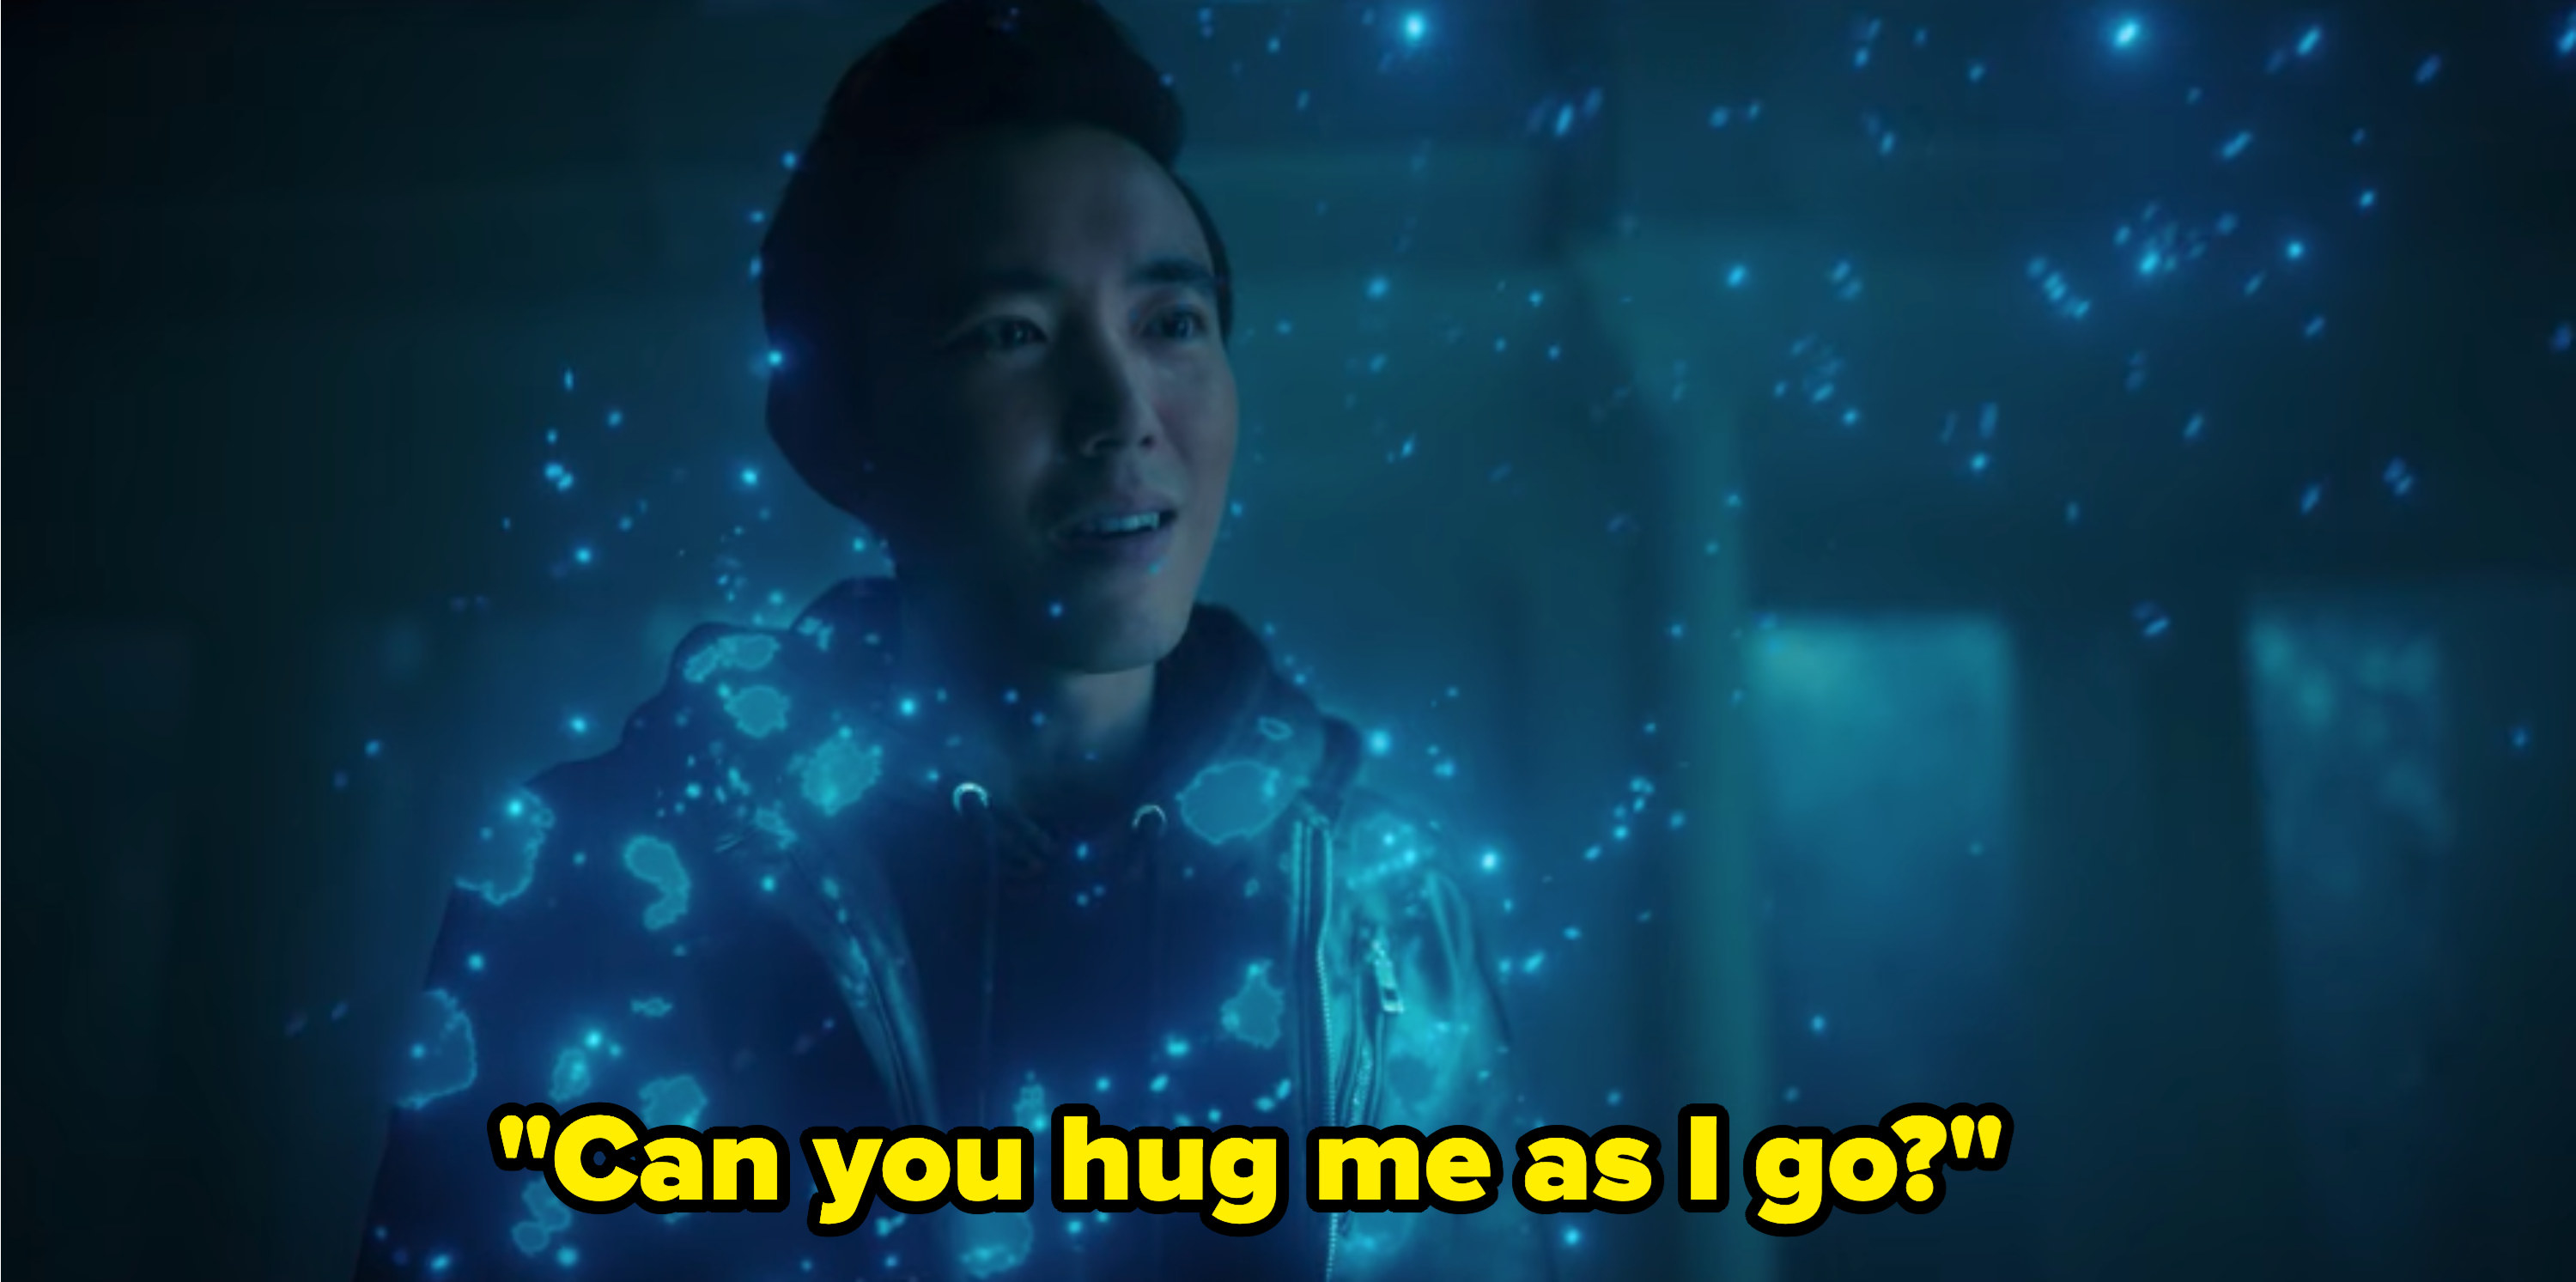 """Blue light surrounds Ben as says, """"Can you hug me as I go?"""""""